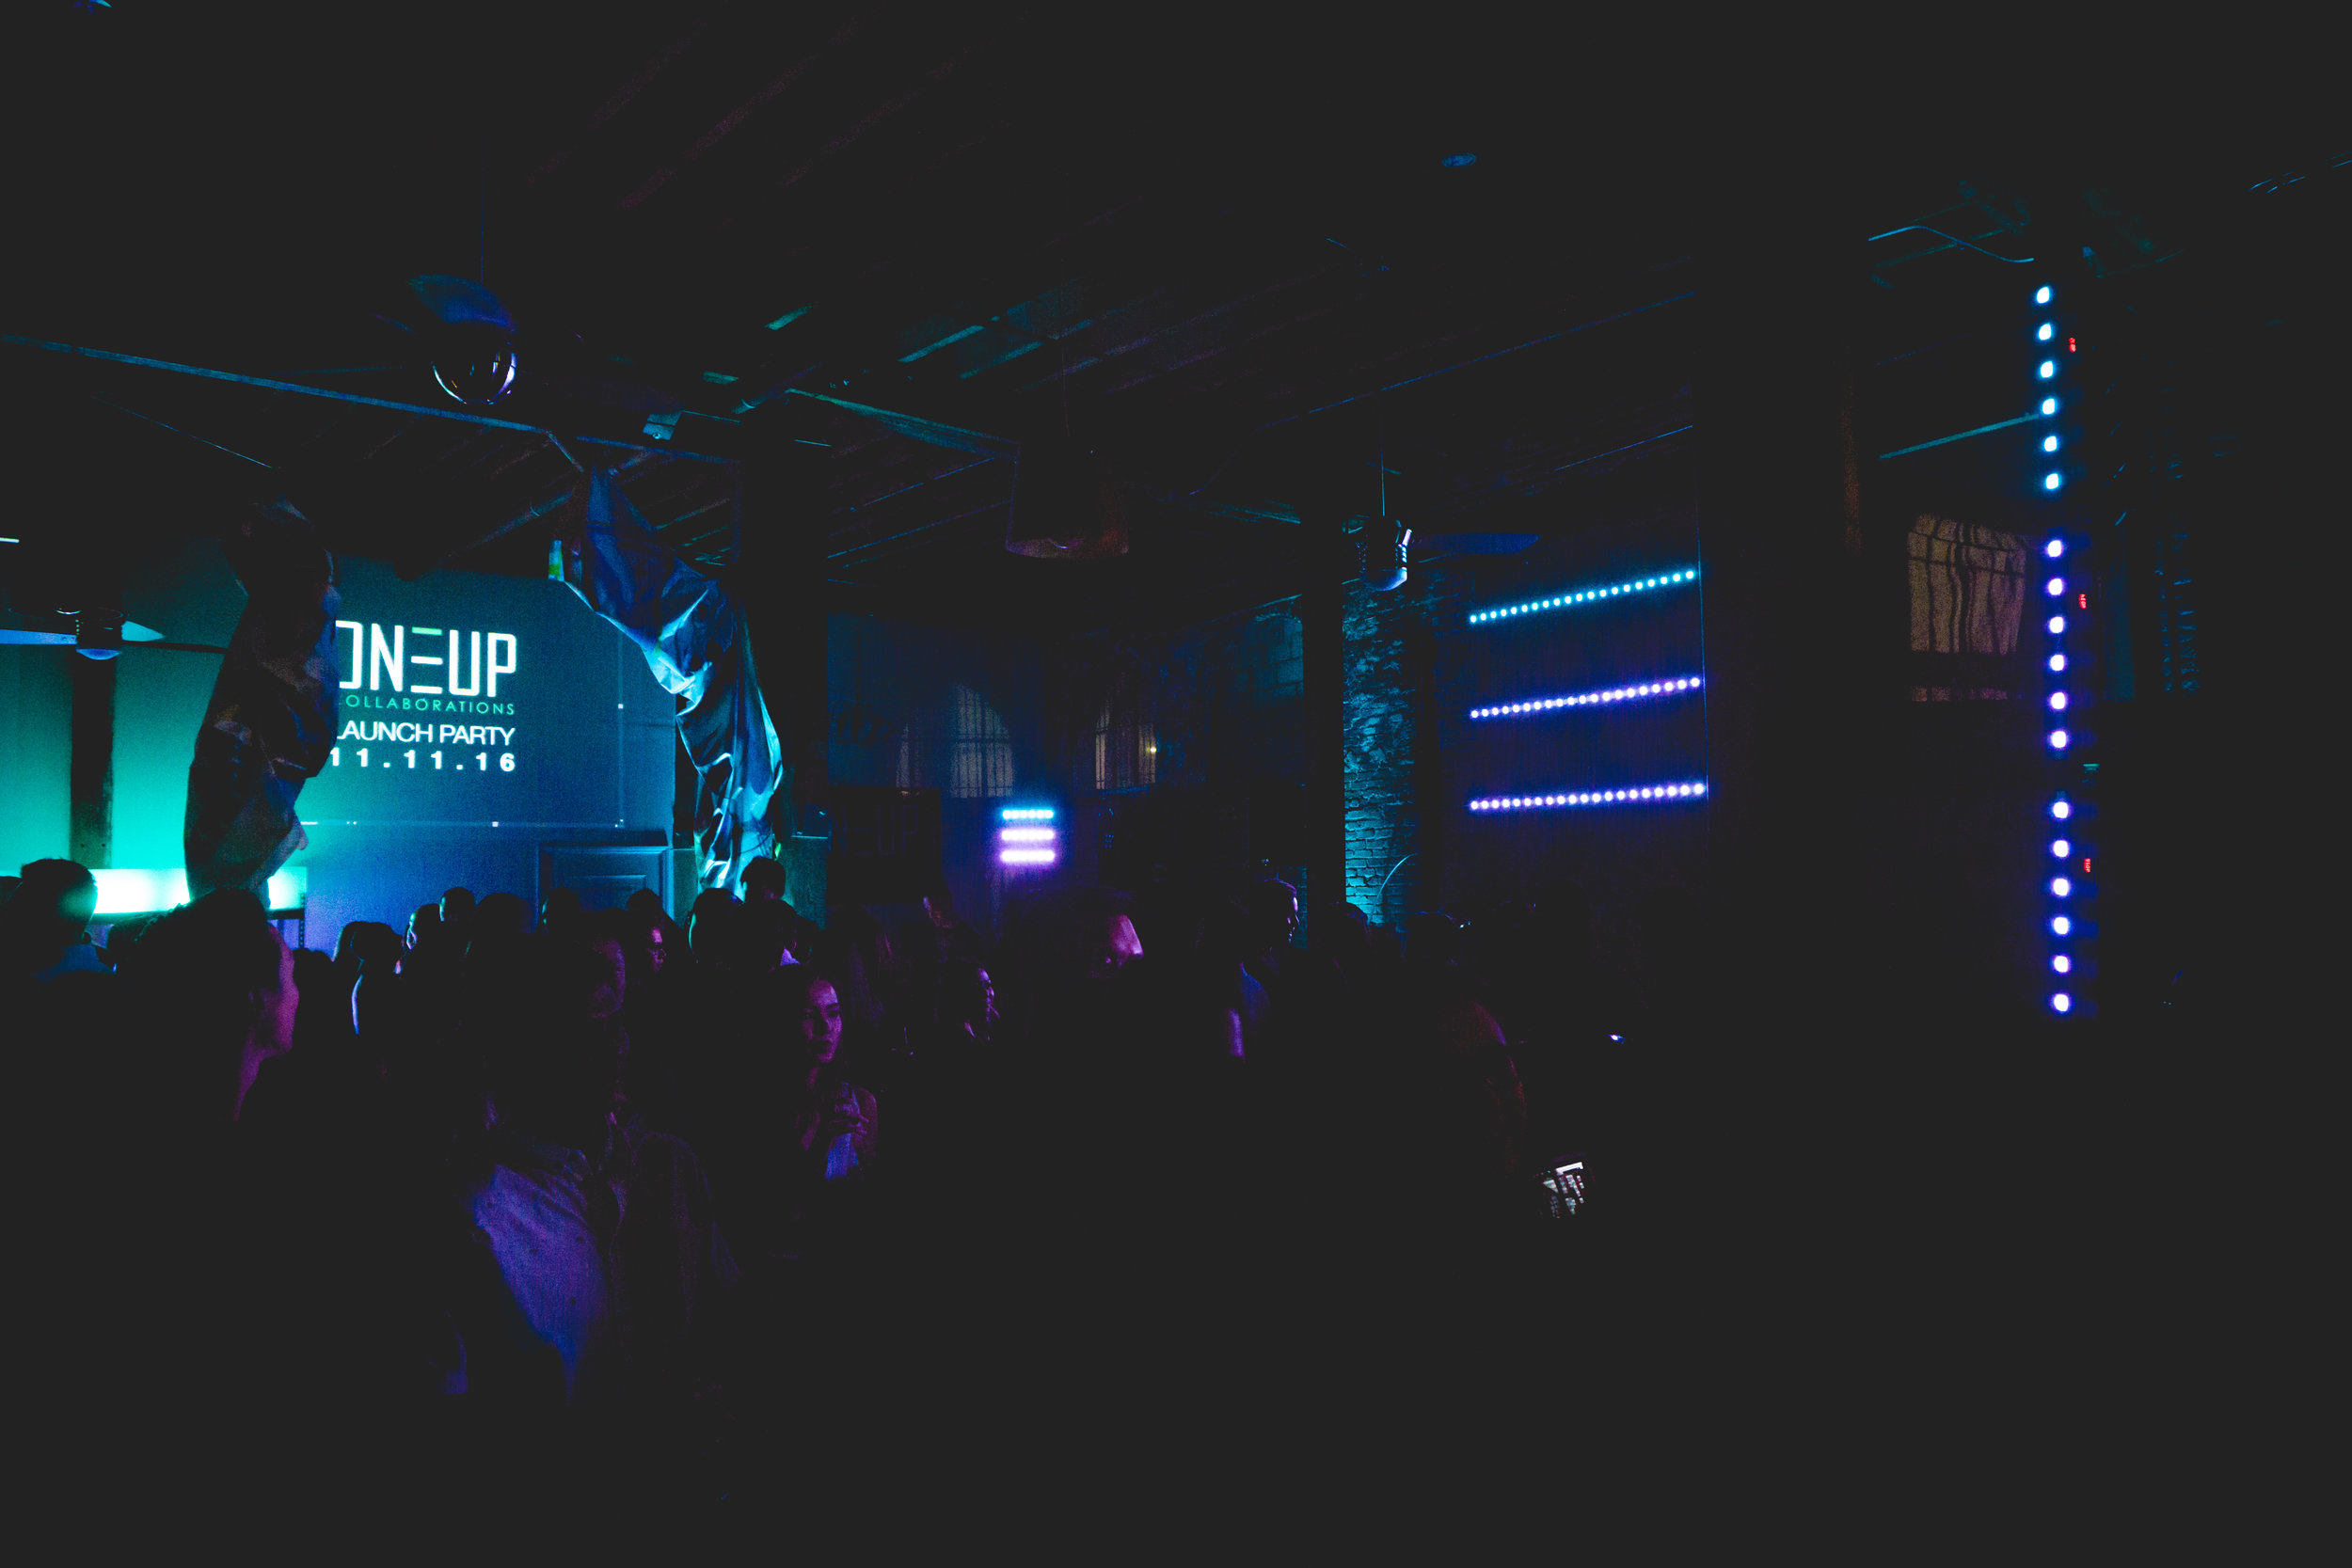 Shout out to DJZ Productions for perfect lighting that was totally on brand with the ONEUP logo.